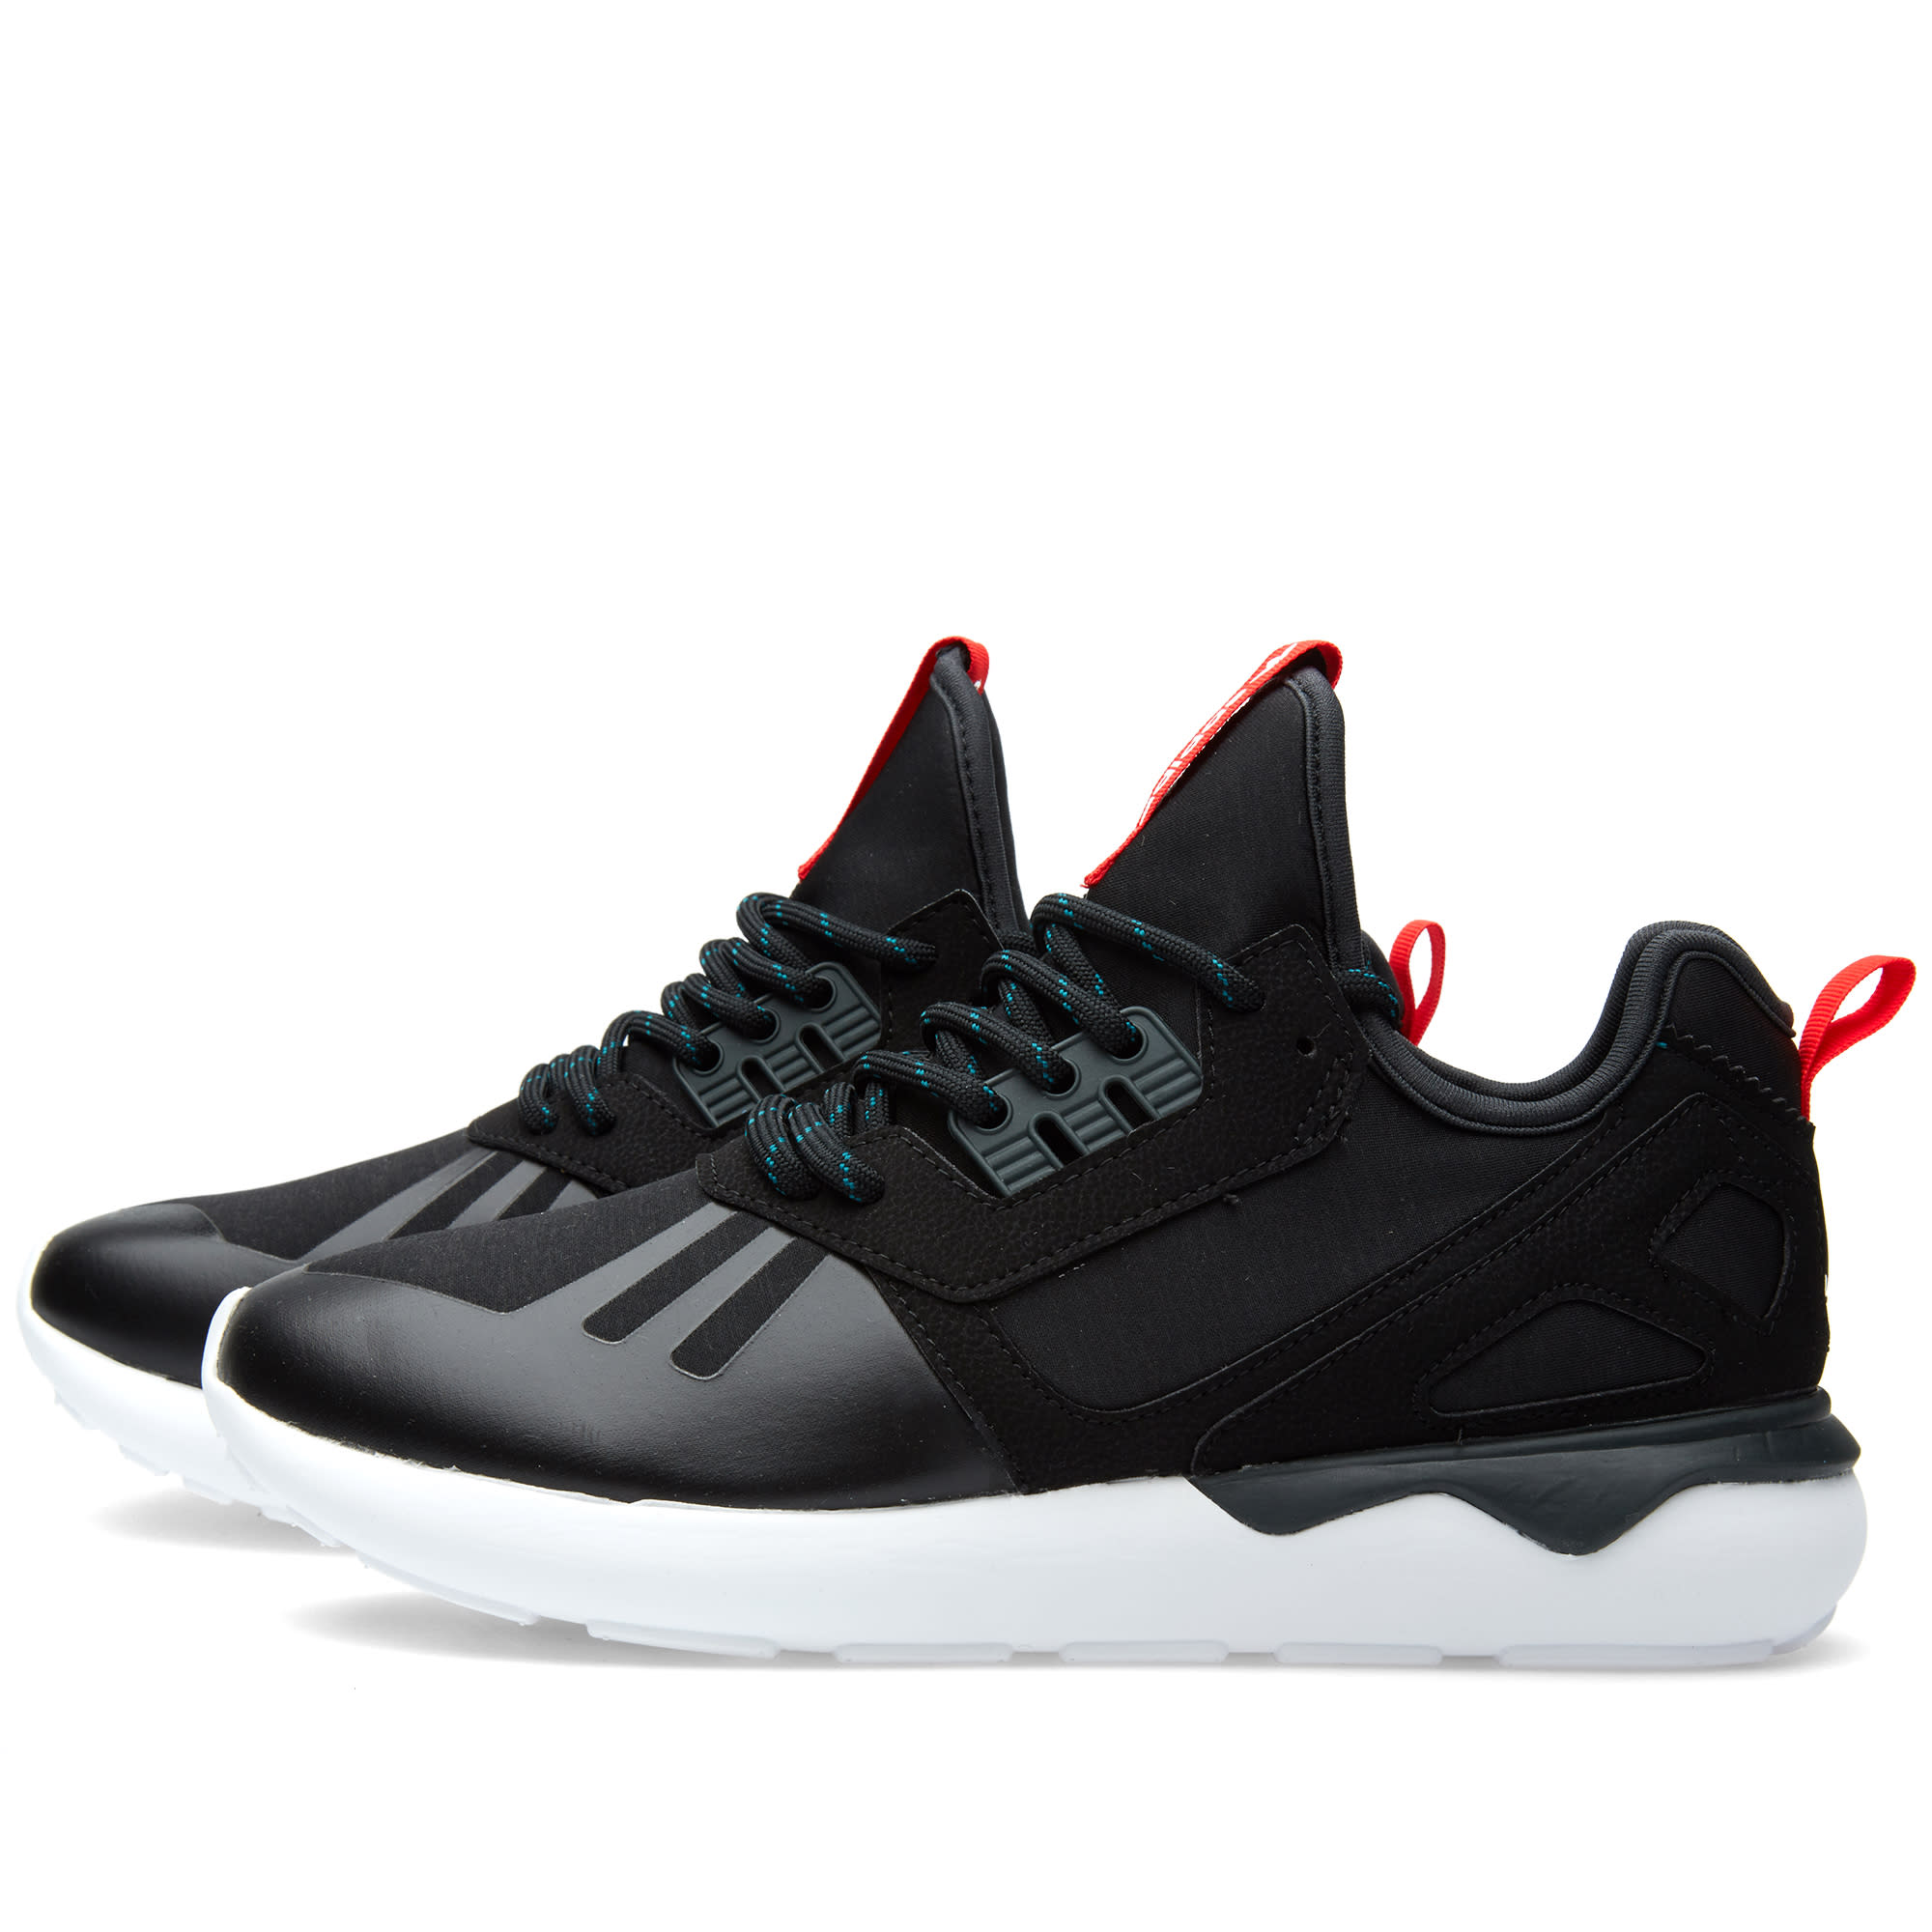 low priced c423f 41436 Adidas Tubular Runner Weave Core Black, Tomato   White   END.